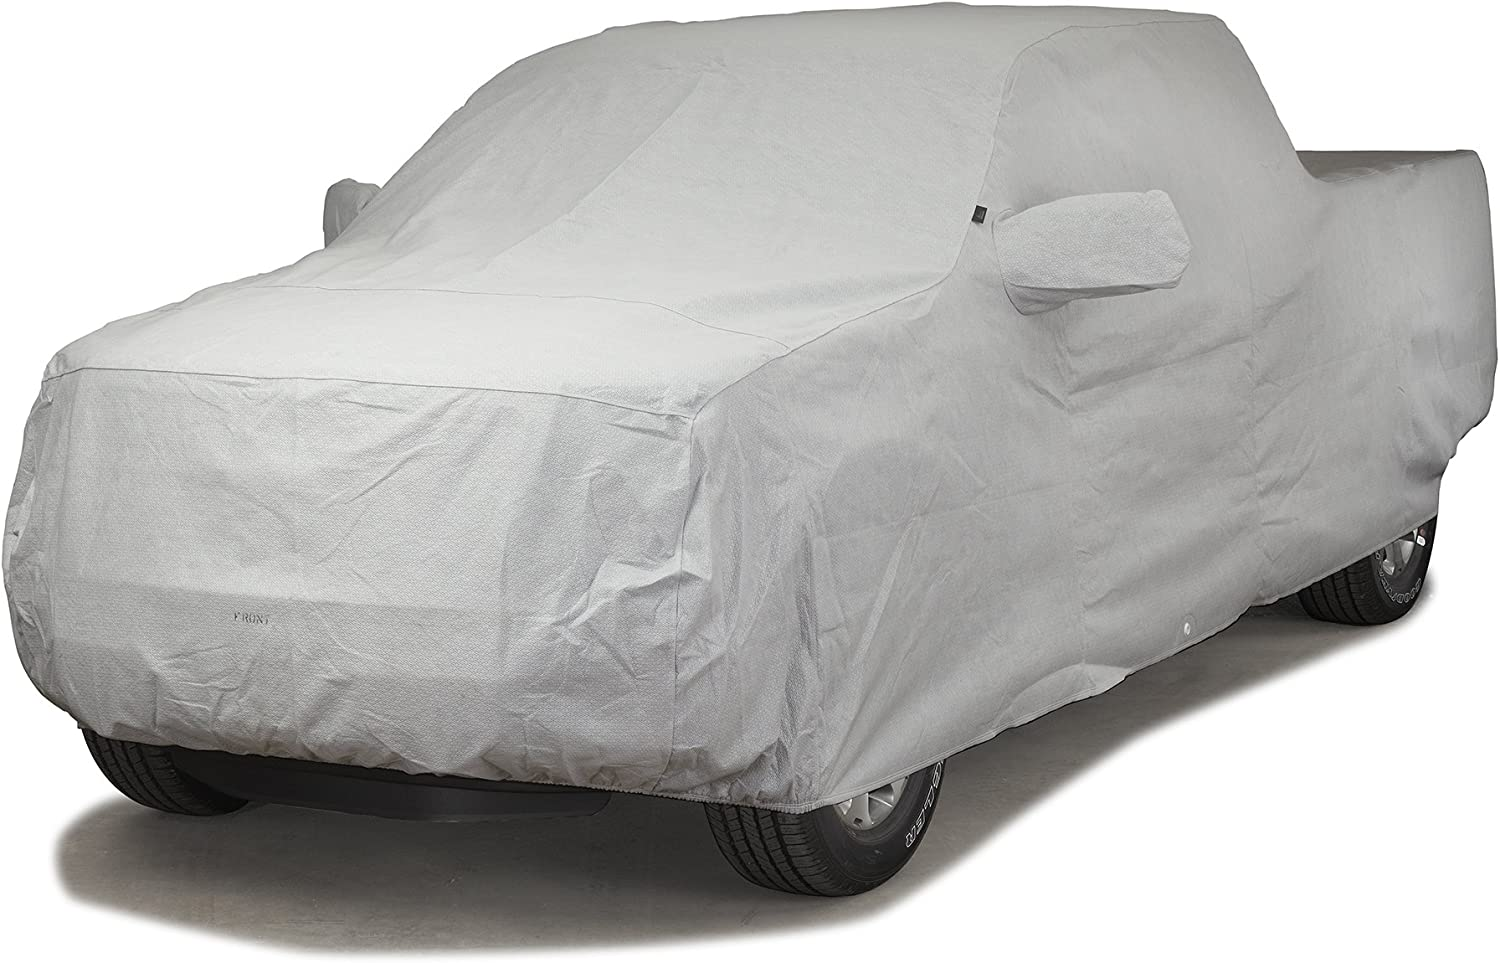 Covercraft Custom Fit Car Cover for Dodge Pickup C18004GK Technalon Evolution Fabric, Gray